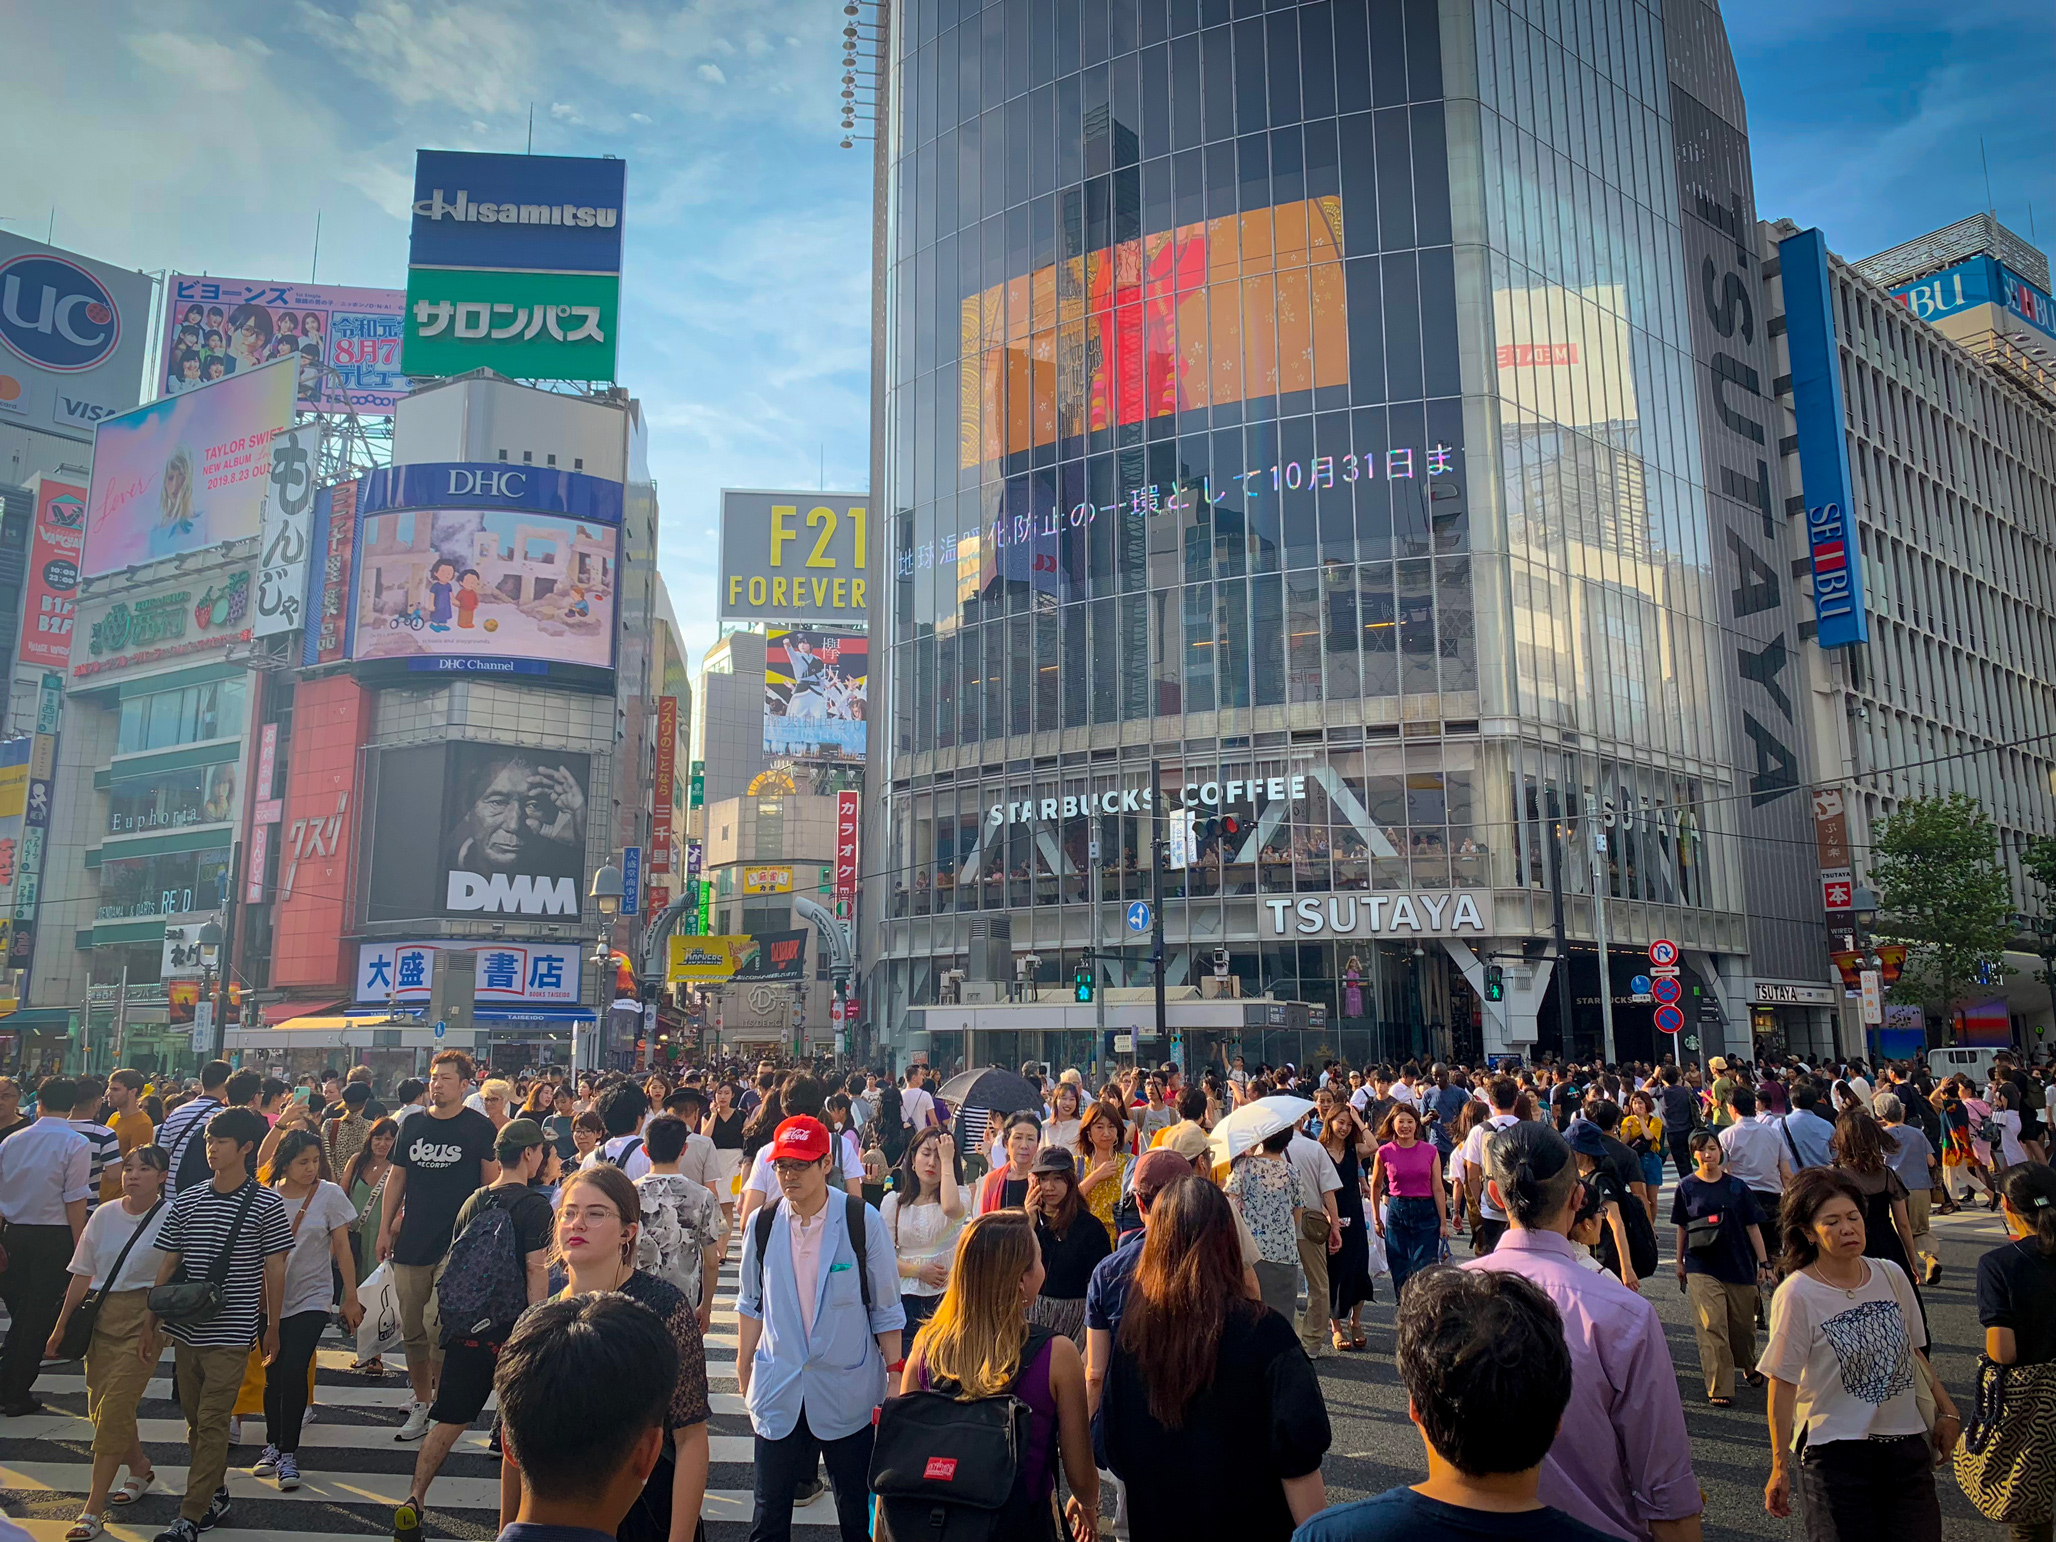 Thanks to its view, the Starbucks Coffee branch that overlooks Shibuya Crossing is one of the busiest in the world.